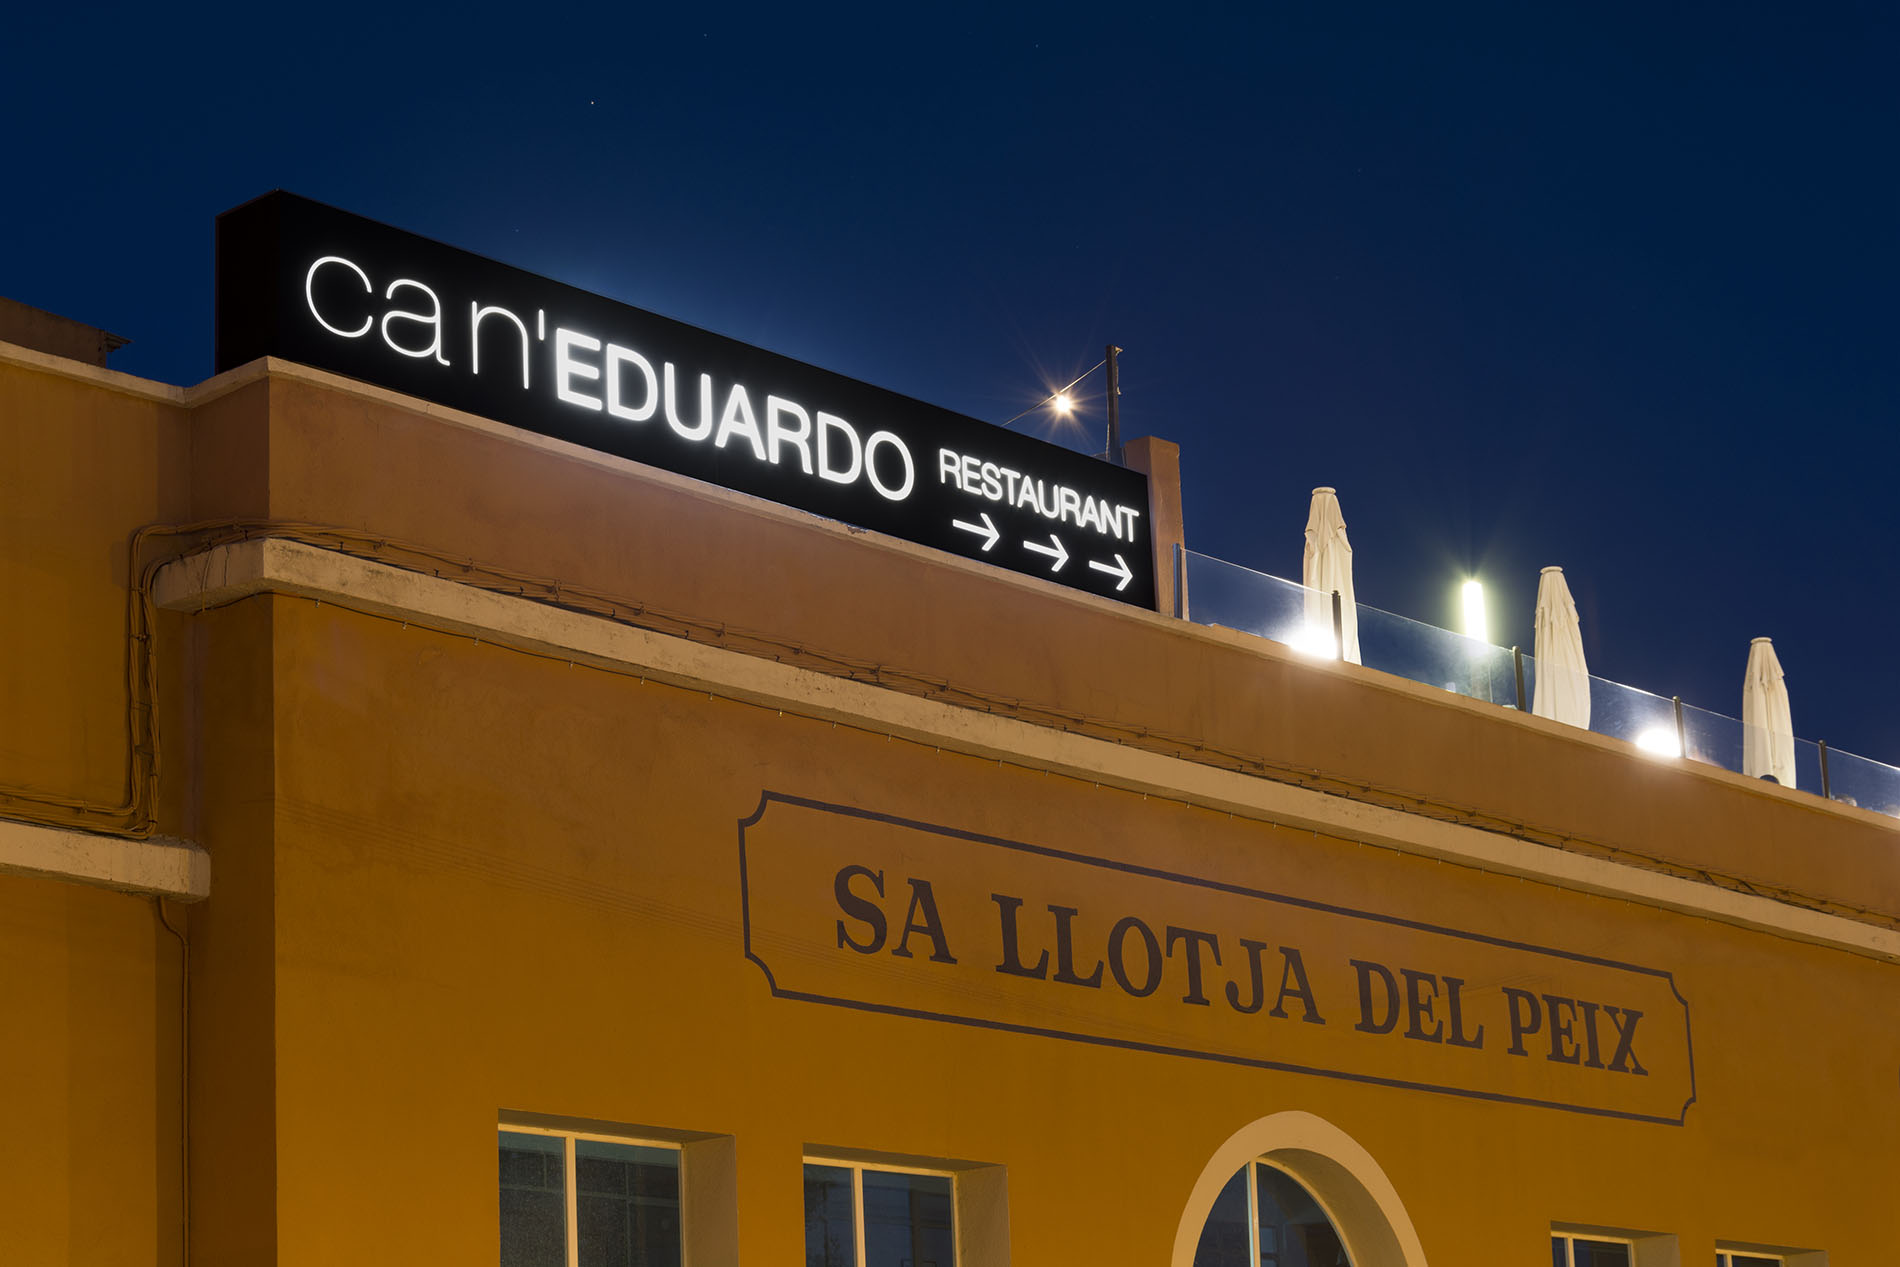 about us, quienes somos, Can Eduardo Restaurant